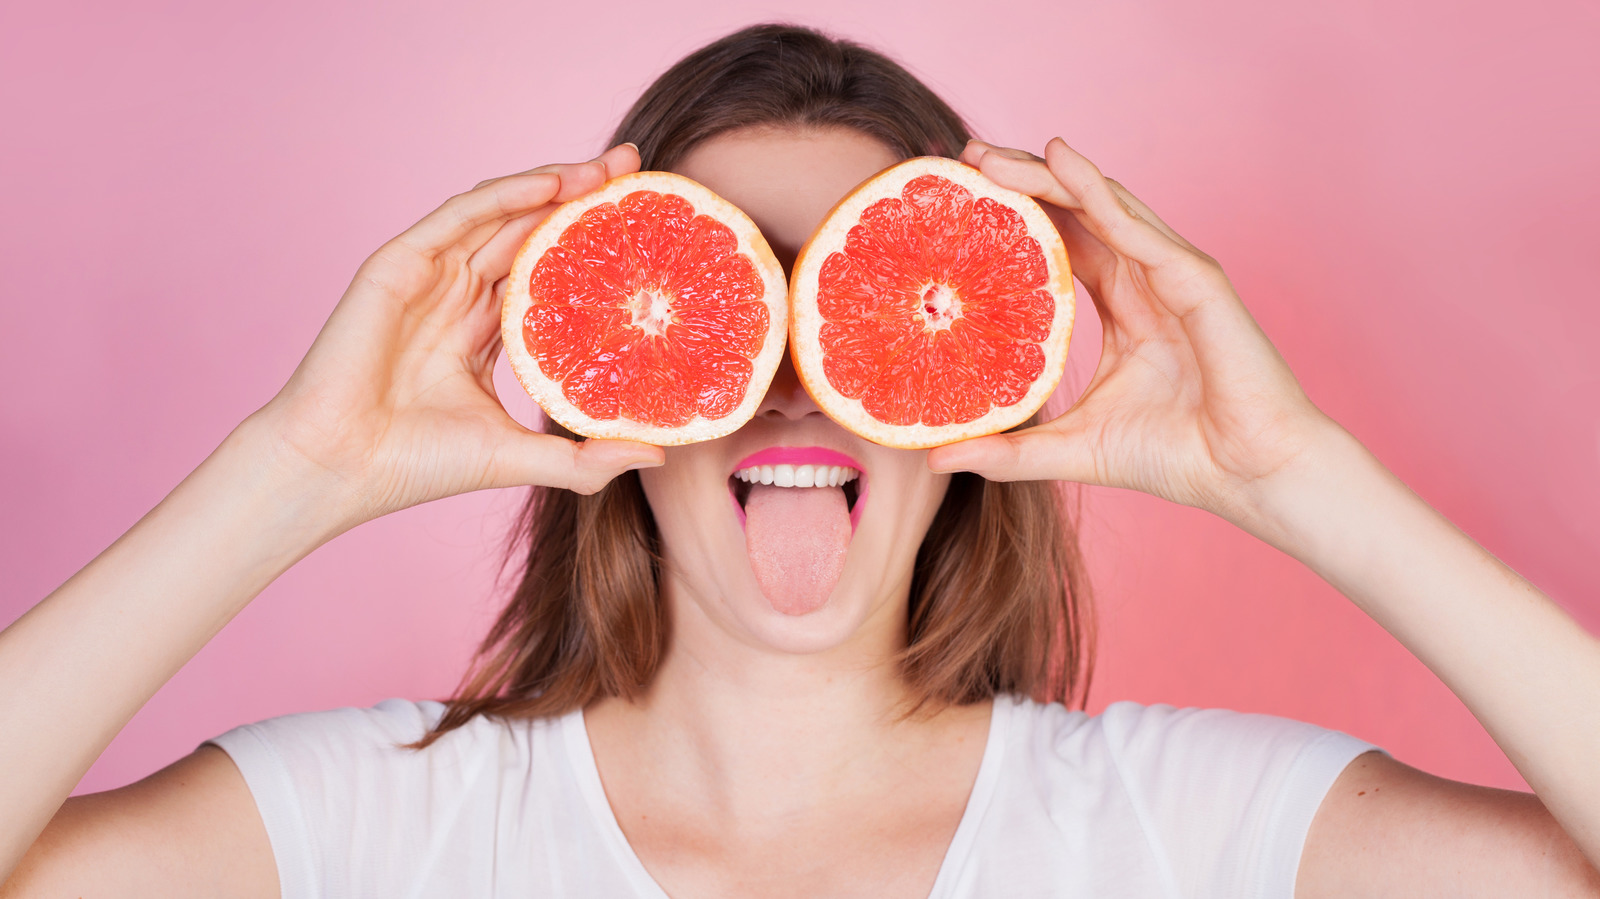 Foods That Can Do Strange Things To Your Body